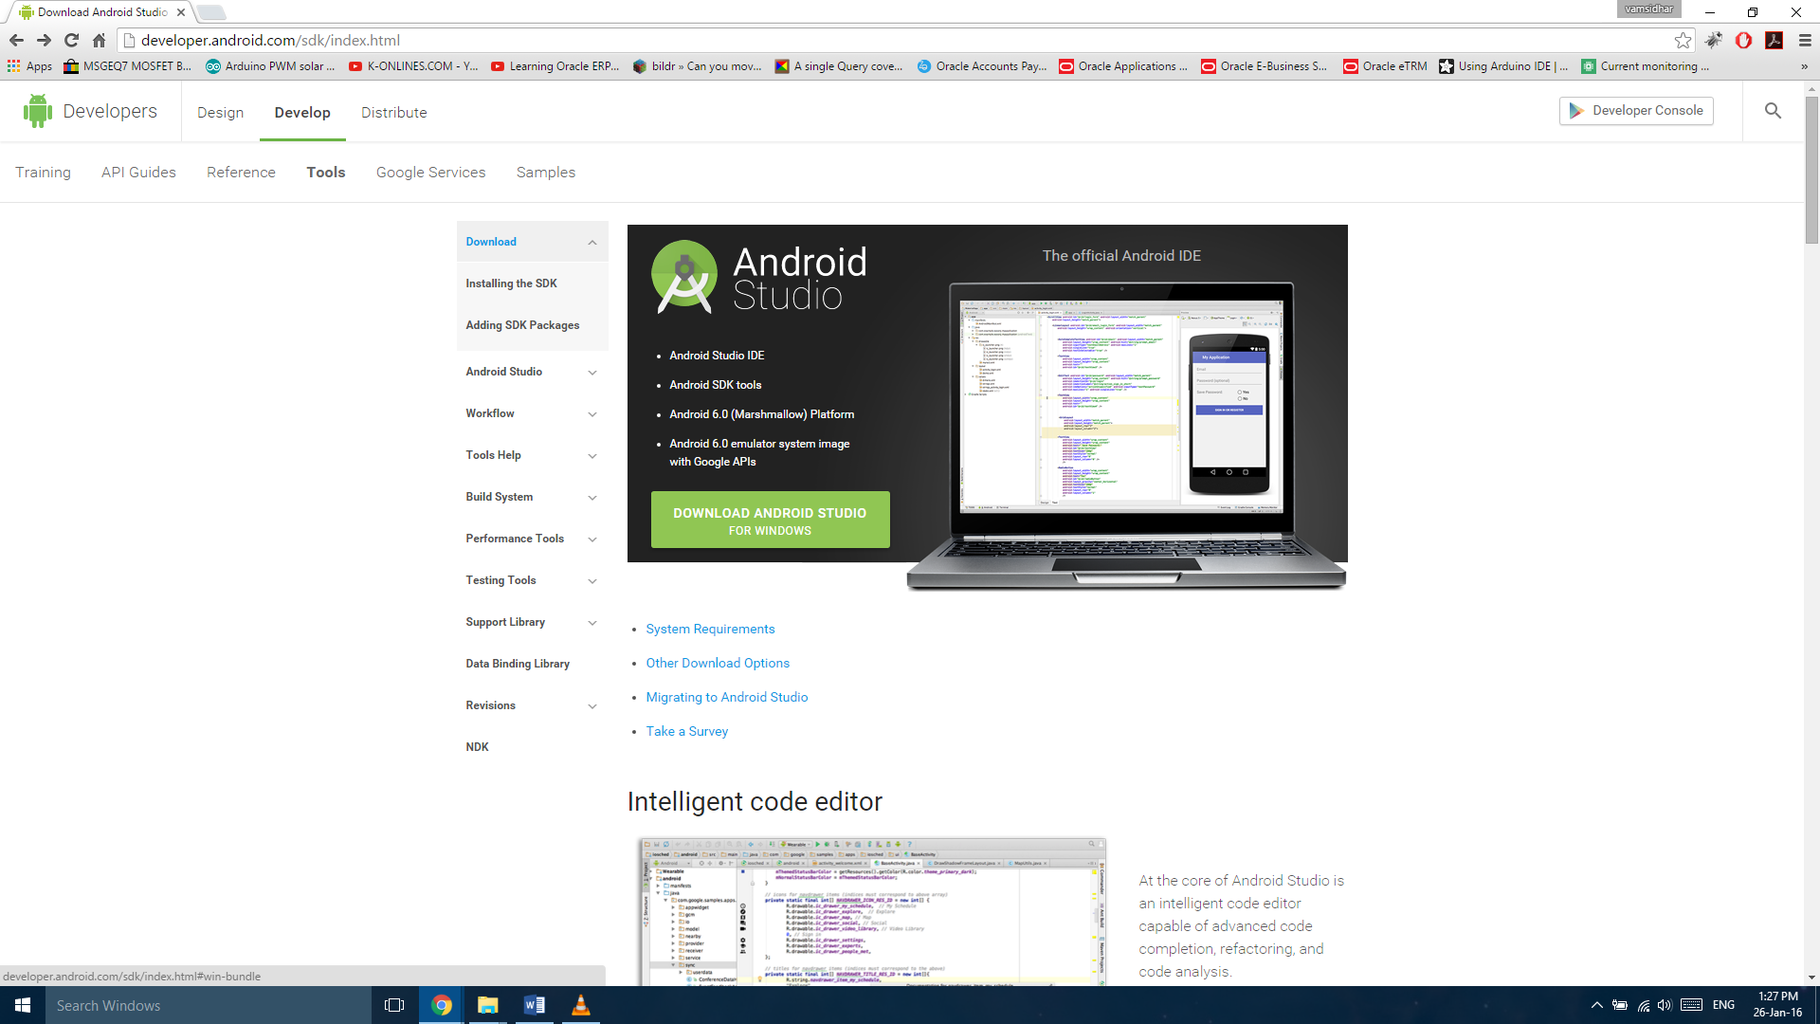 Downloading Android Studio